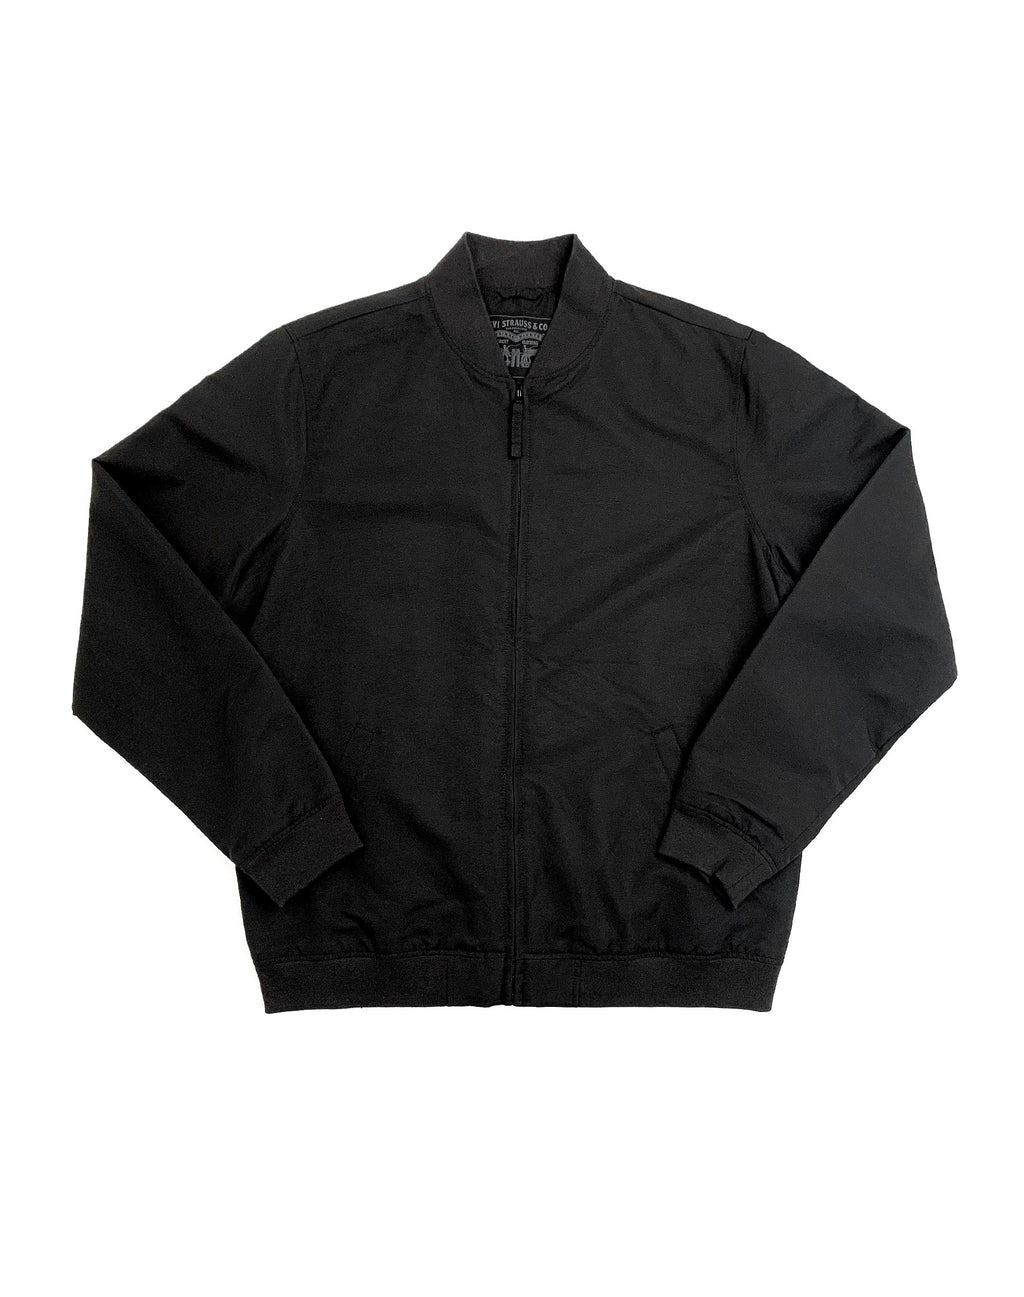 LEVI'S BLACK CANVAS JACKET